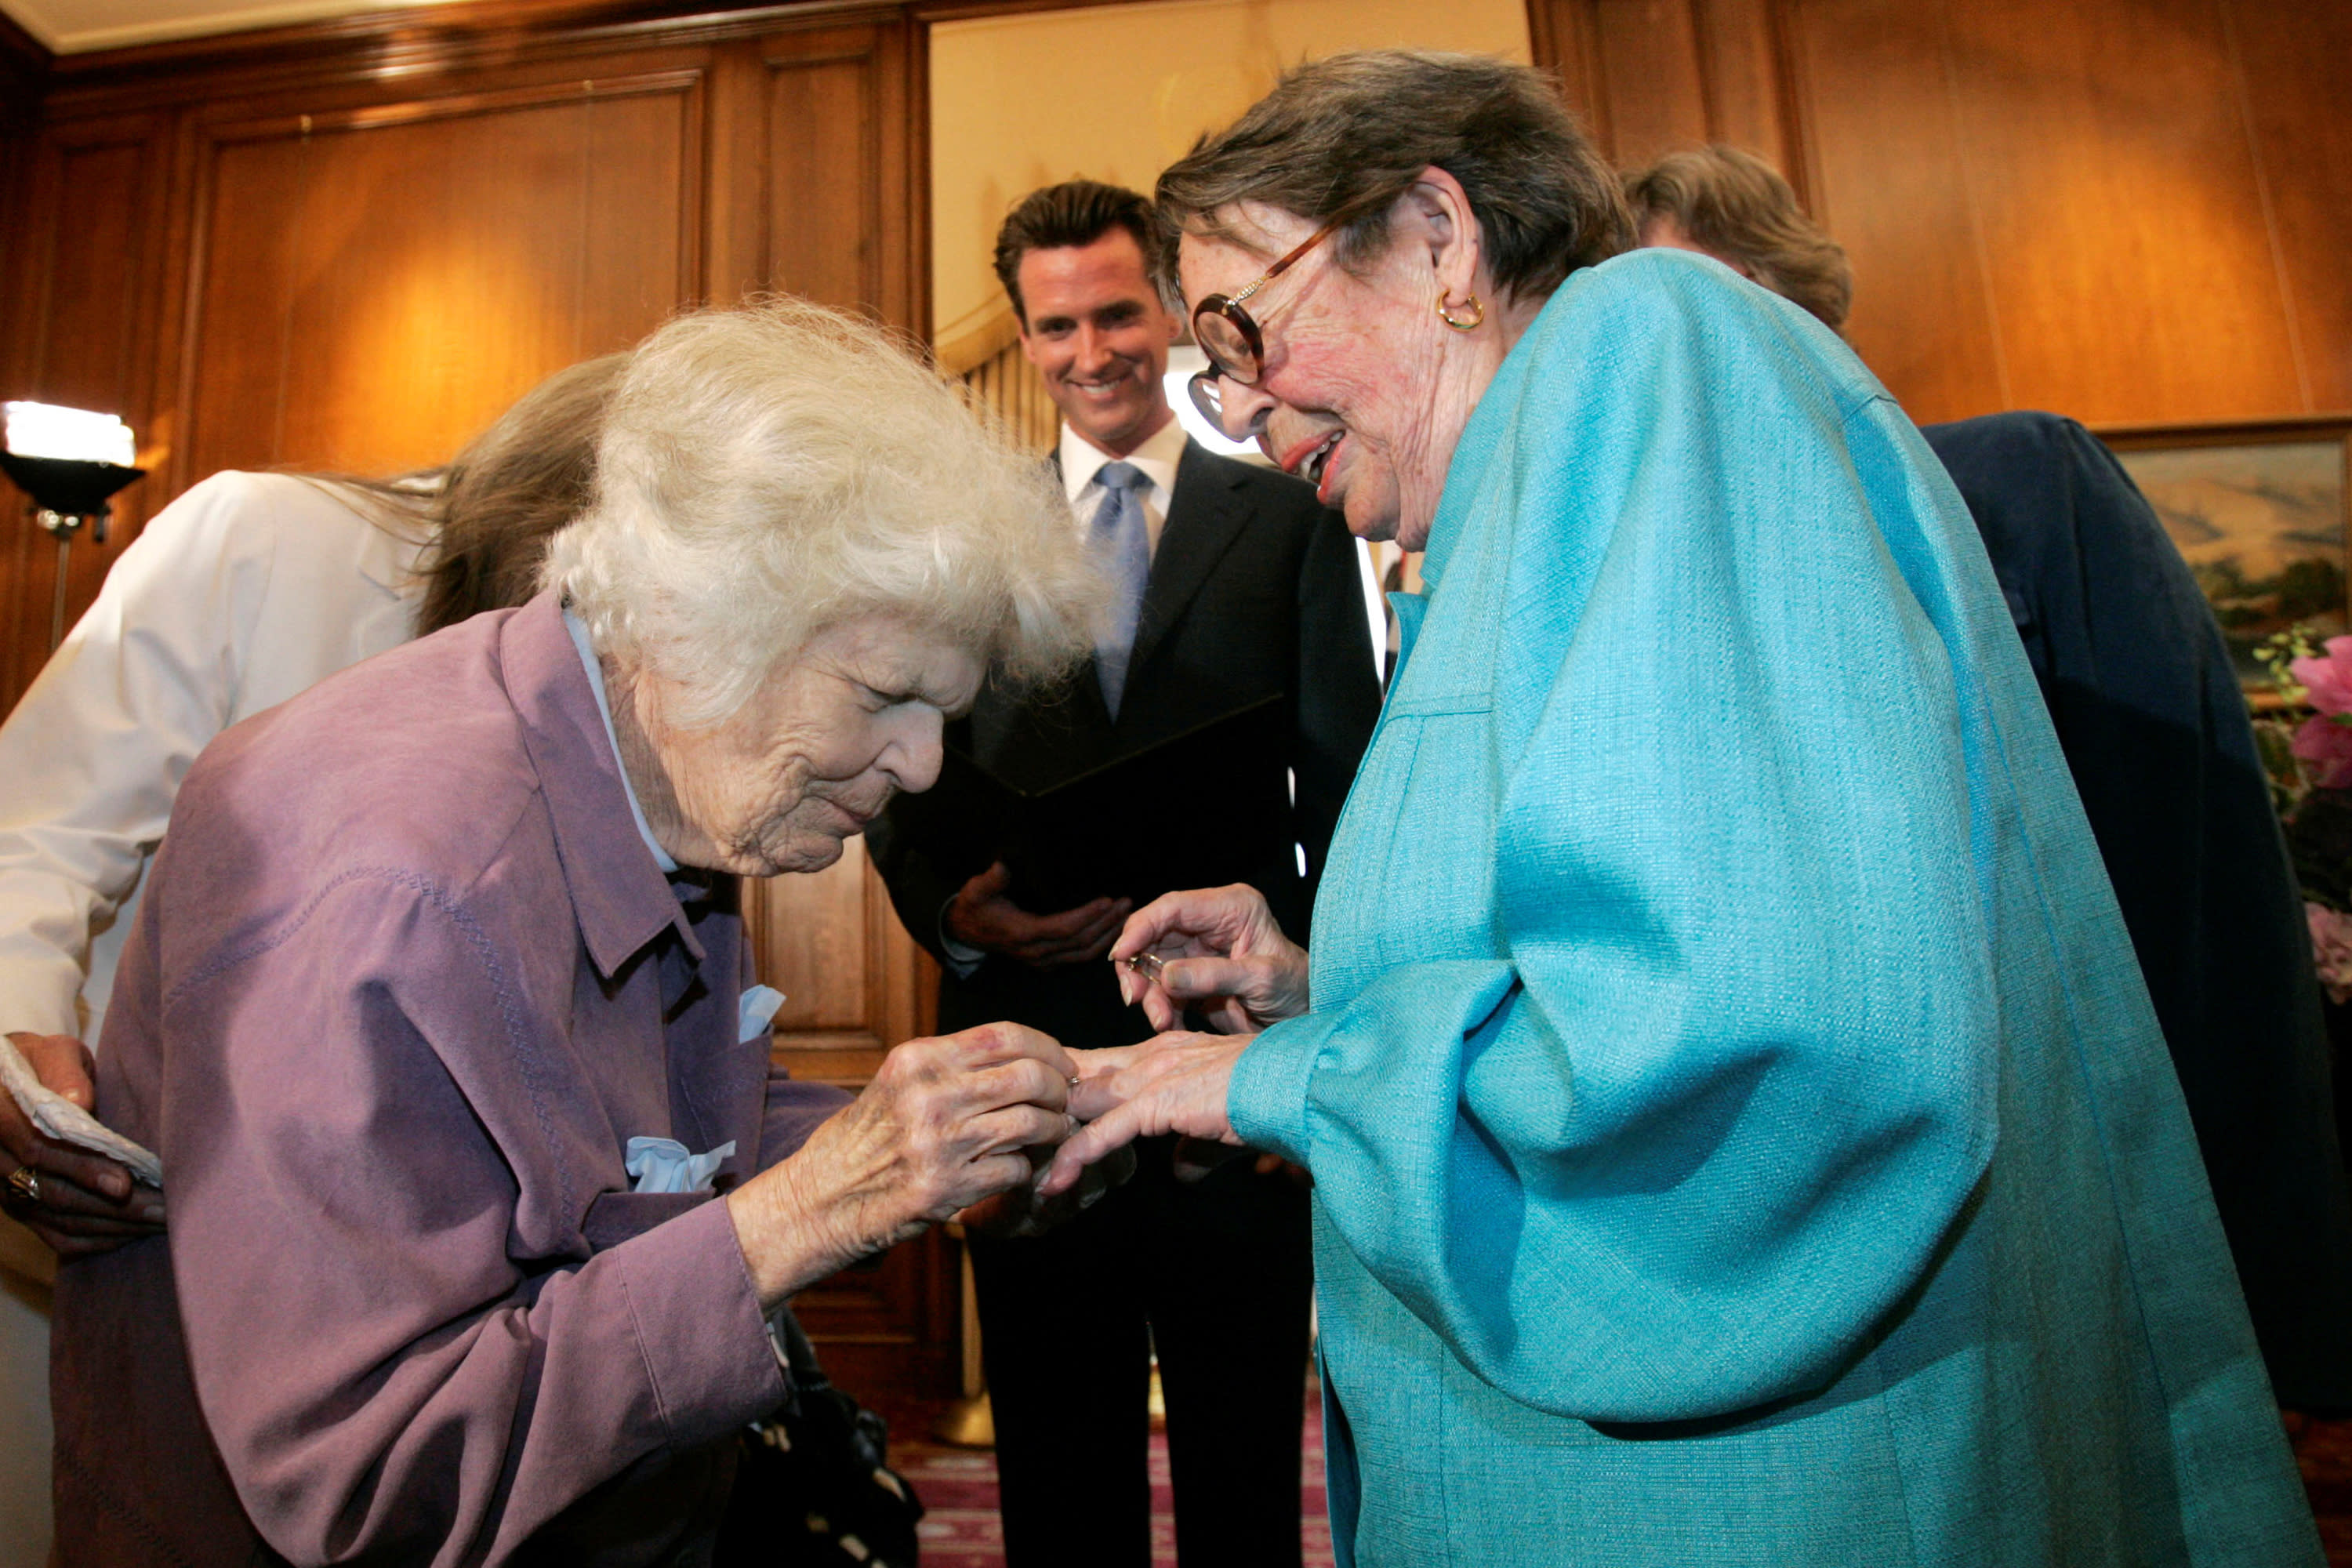 FILE - In this June 16, 2008, file photo, Del Martin, left, places a ring on her partner Phyllis Lyon, right, during their wedding ceremony officiated by then-San Francisco Mayor Gavin Newsom, center, at City Hall in San Francisco. Pioneering gay rights activist Lyon, who was among the first same-sex couples to marry in California when it became legal to do so, has died at her San Francisco home. Lyon died at age 95 of natural causes Thursday, April 9, 2020. (AP Photo/Marcio Jose Sanchez, File)